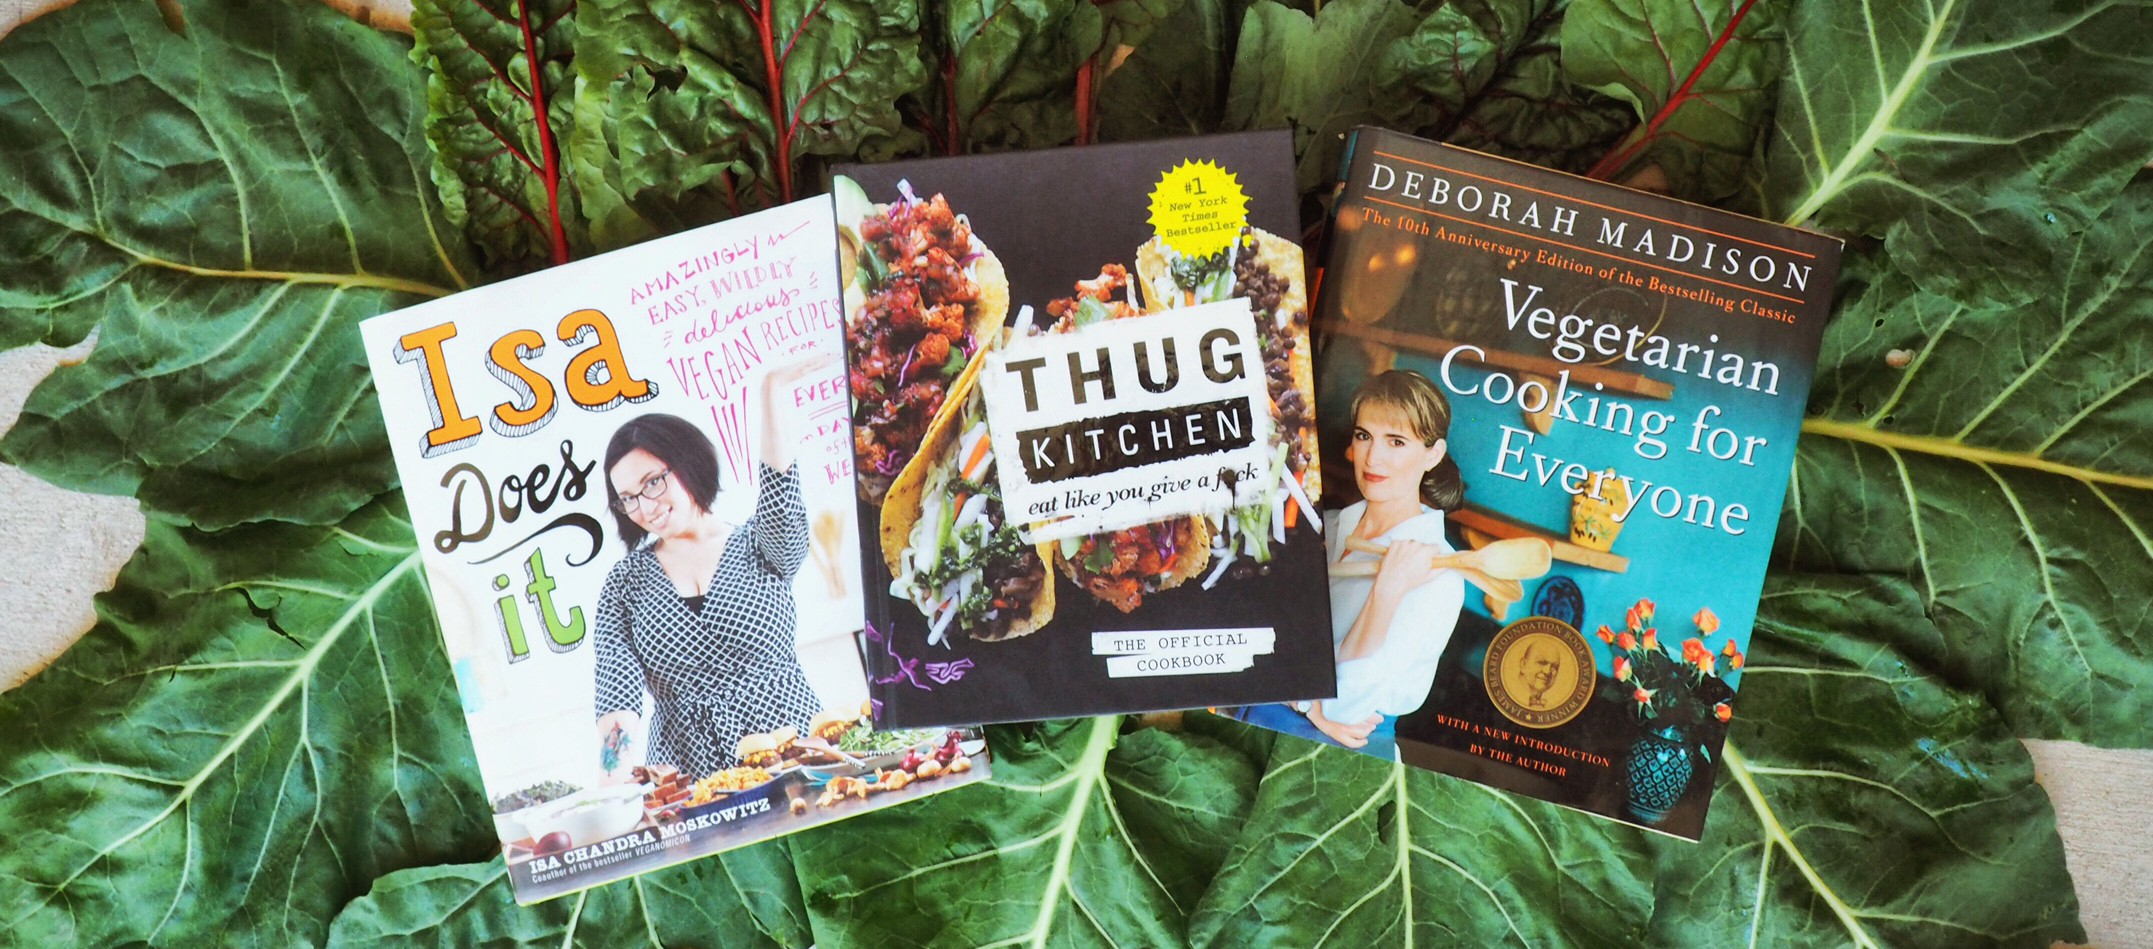 10 Cookbooks for People Who Love the Planet - Center for